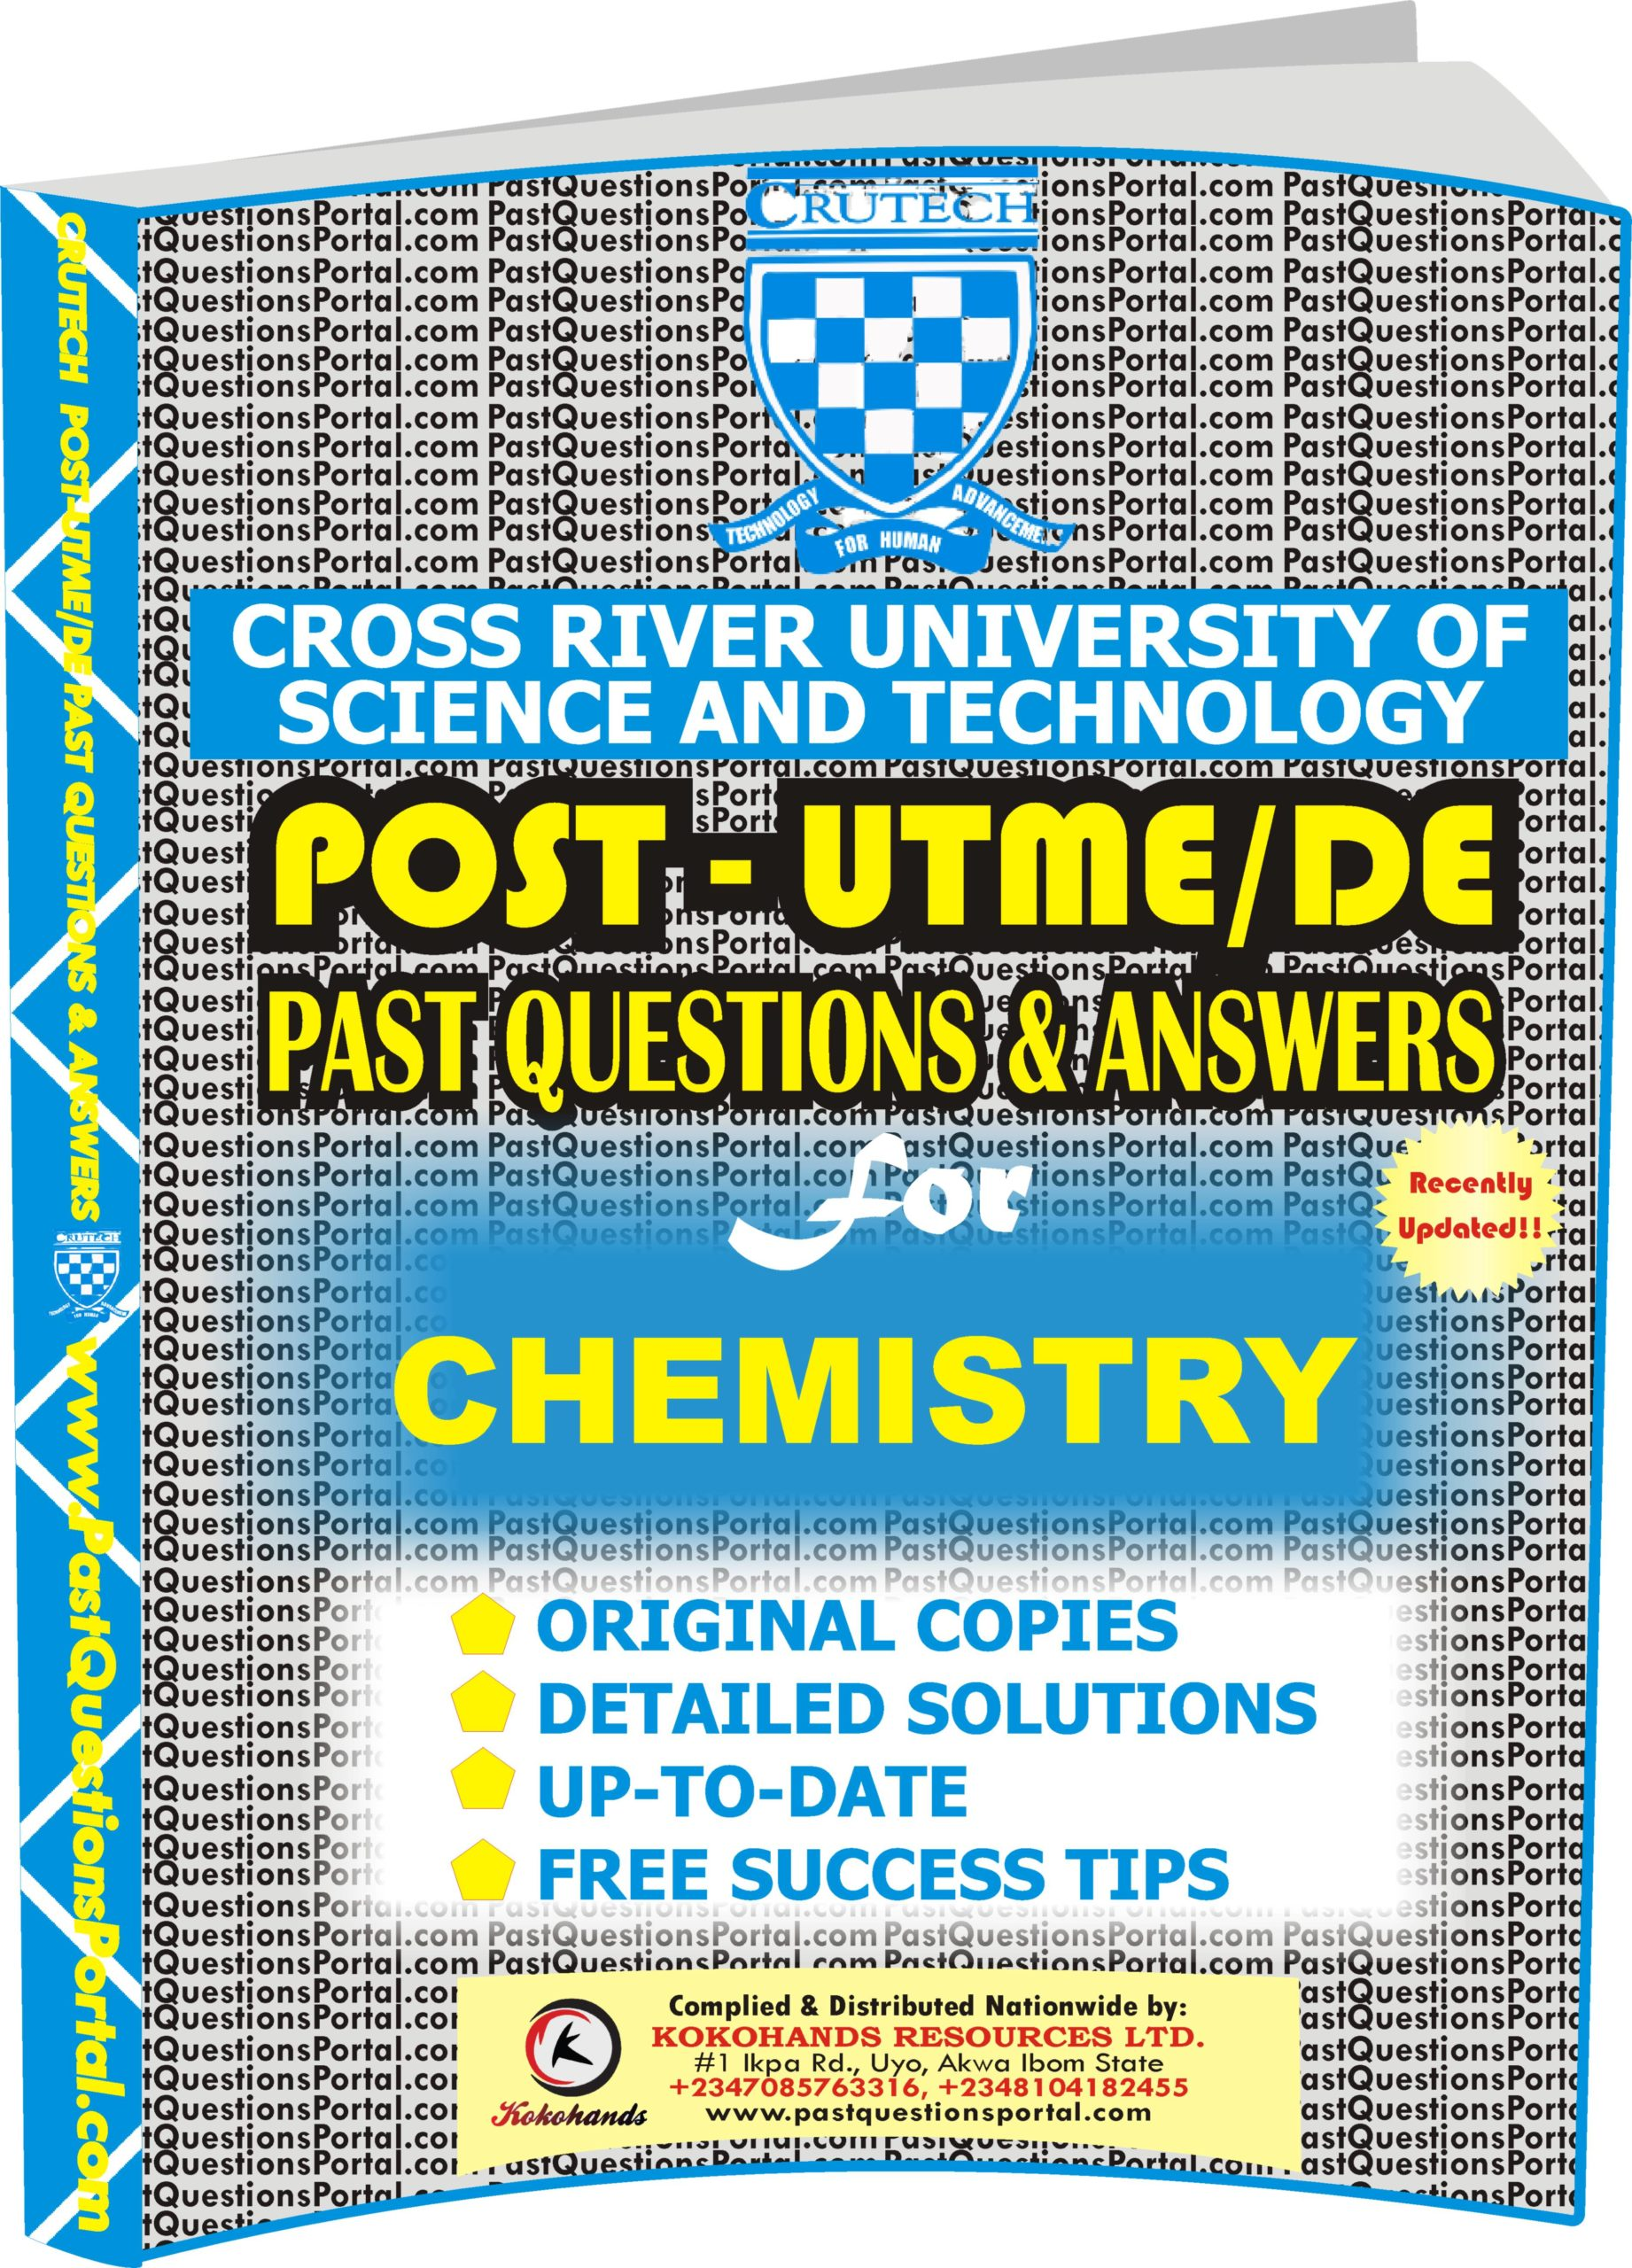 CRUTECH Post UTME Past Questions for CHEMISTRY